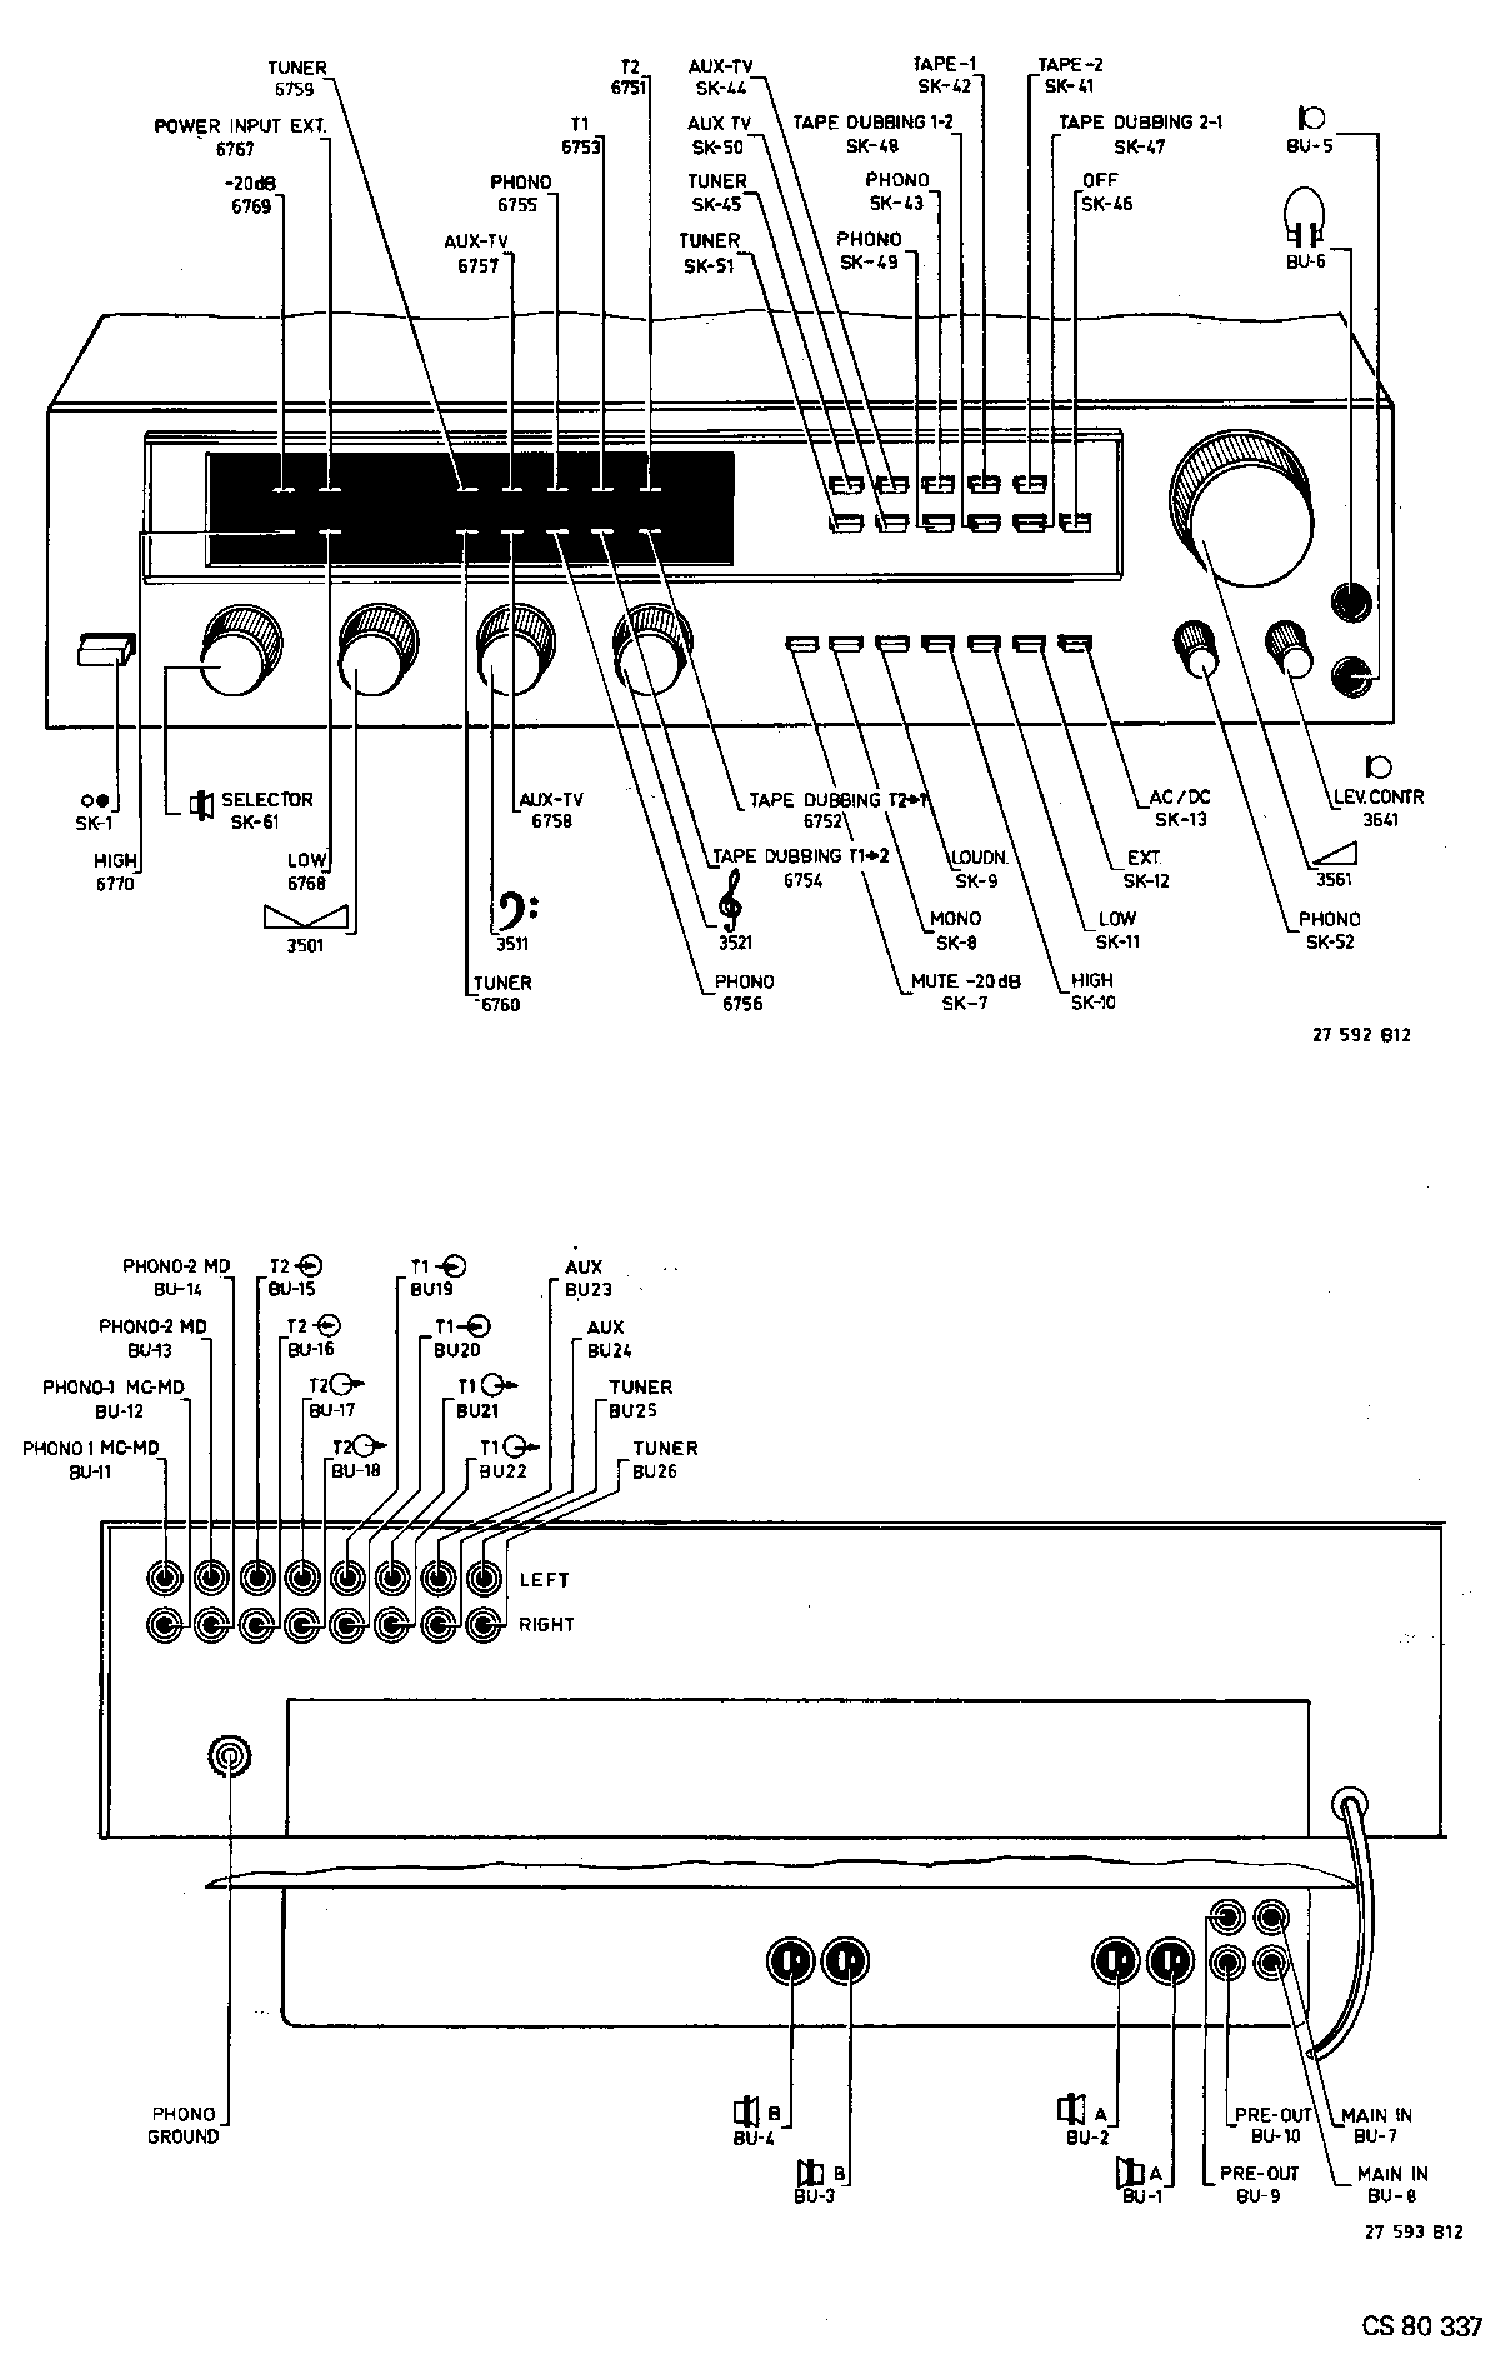 Philips Amp Manuals